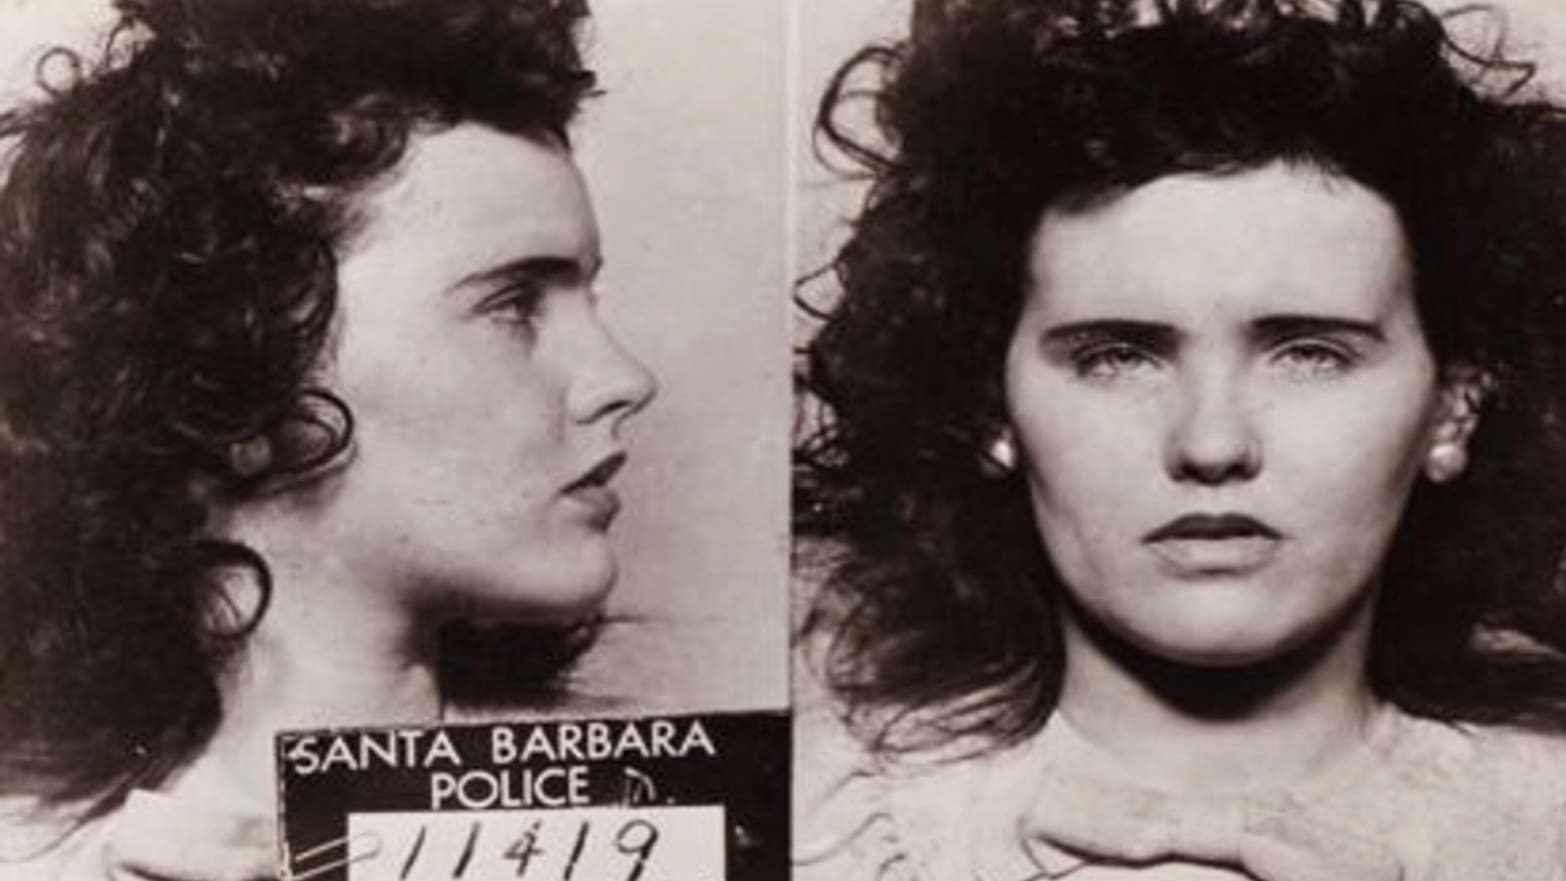 The Black Dahlia: A Gruesome Murder Mystery Hollywood Just Can't Quit